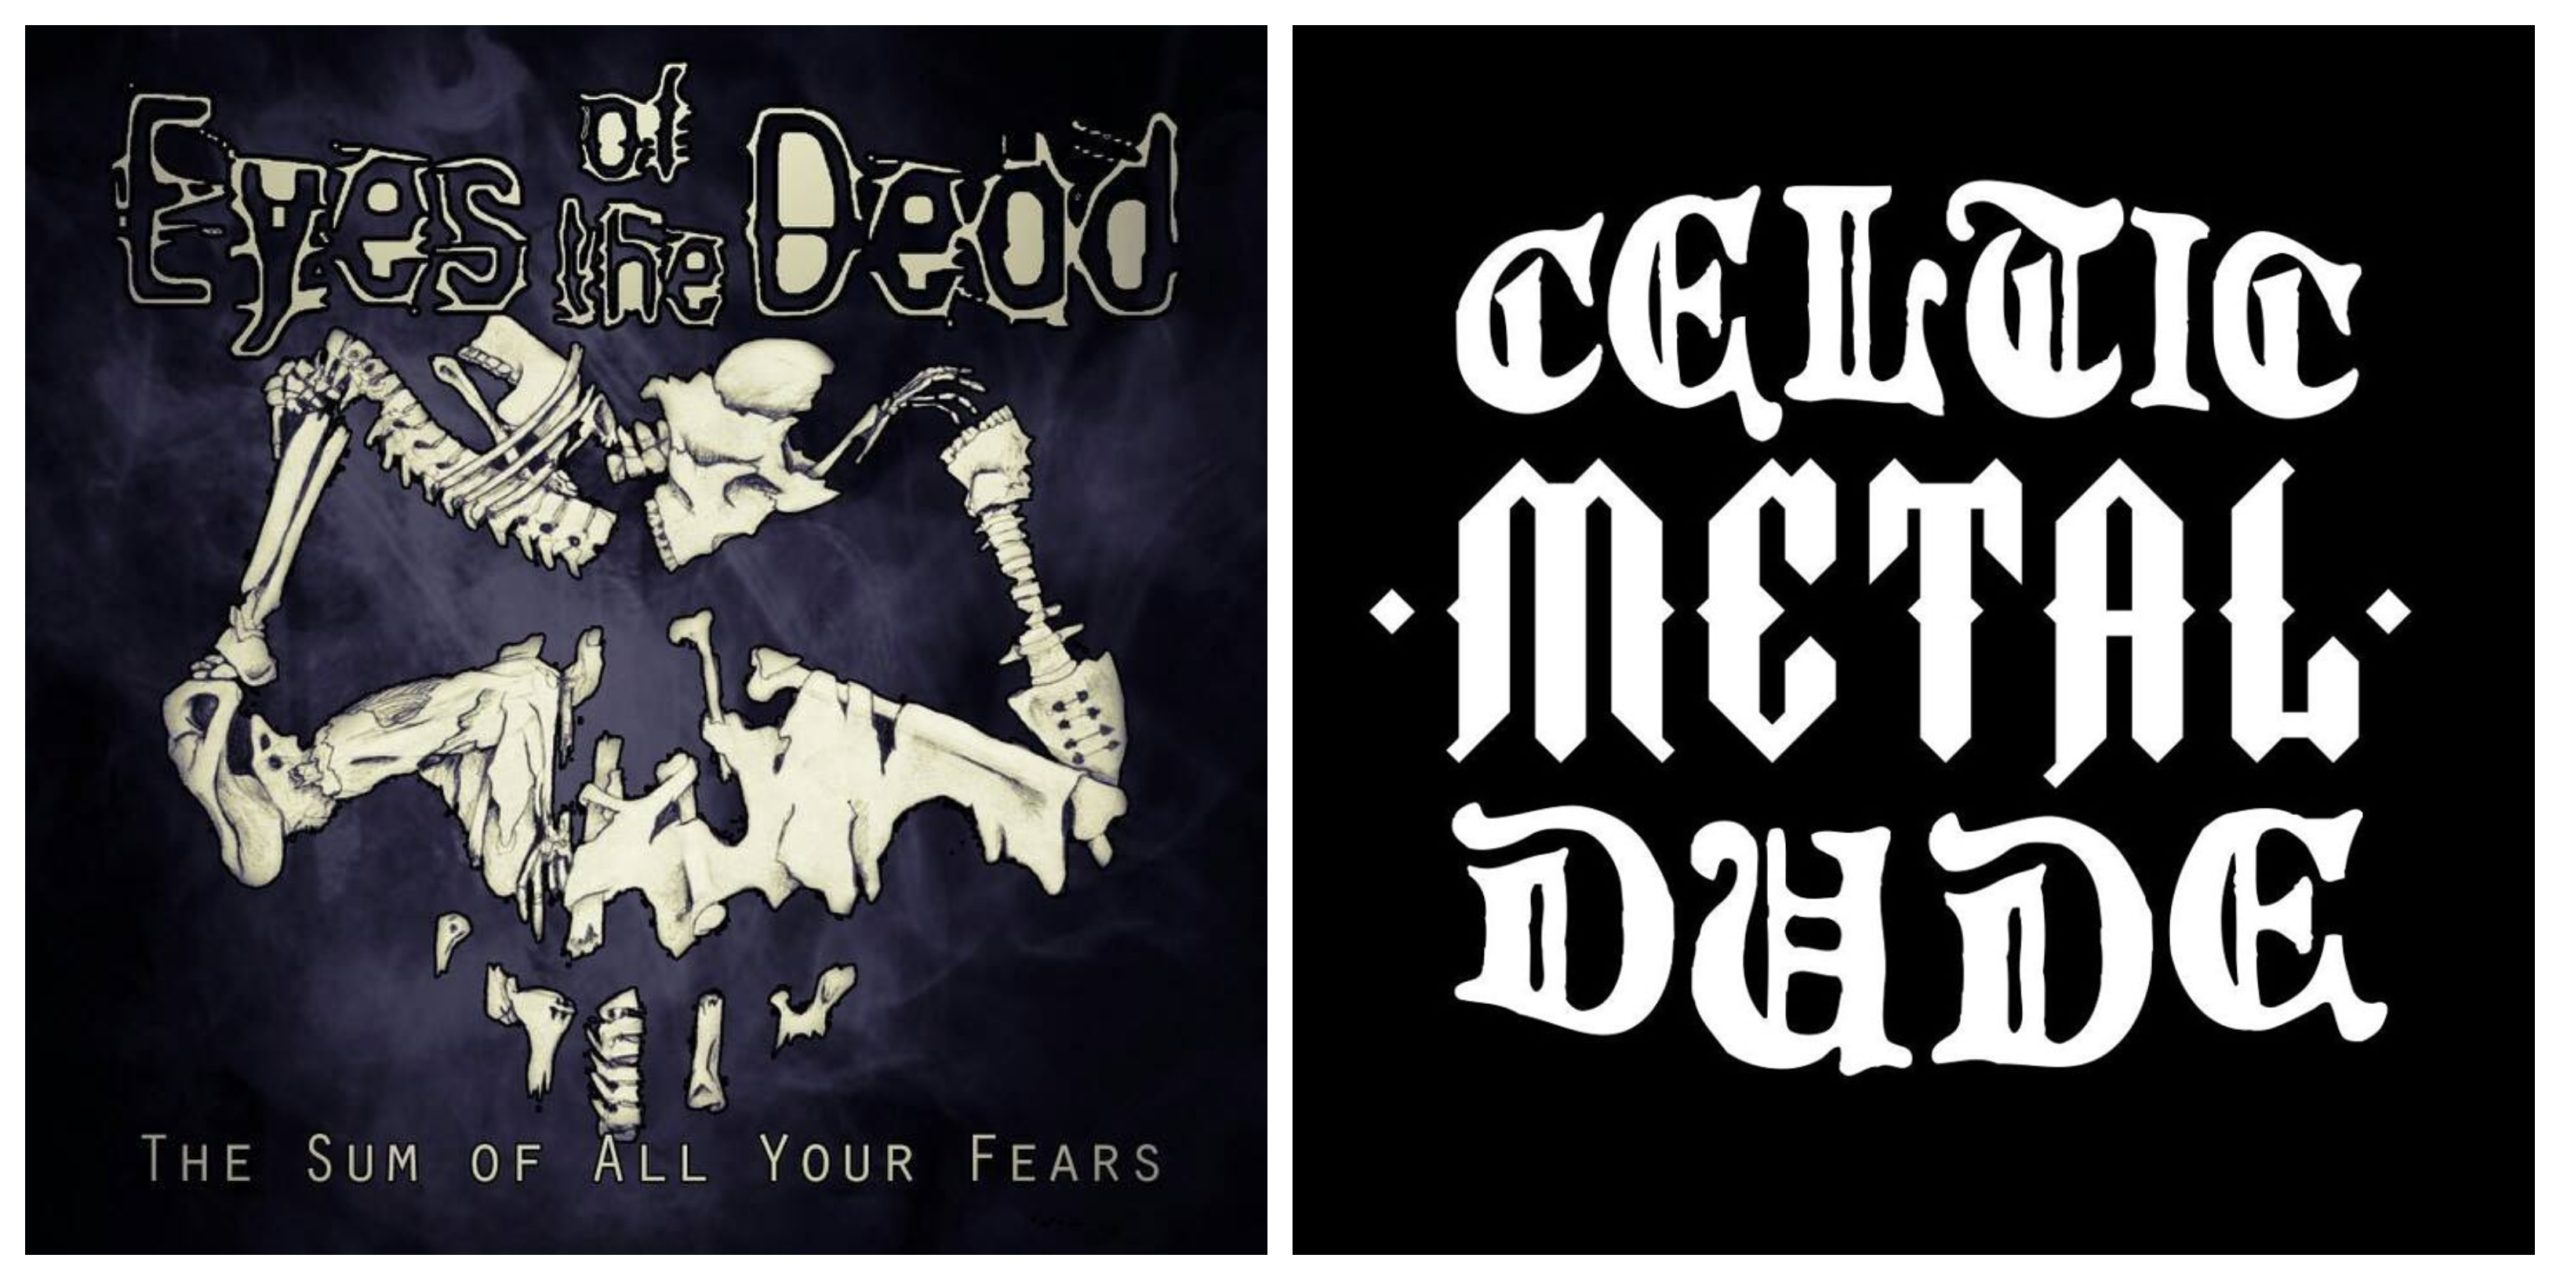 eyes of the dead celtic metal dude